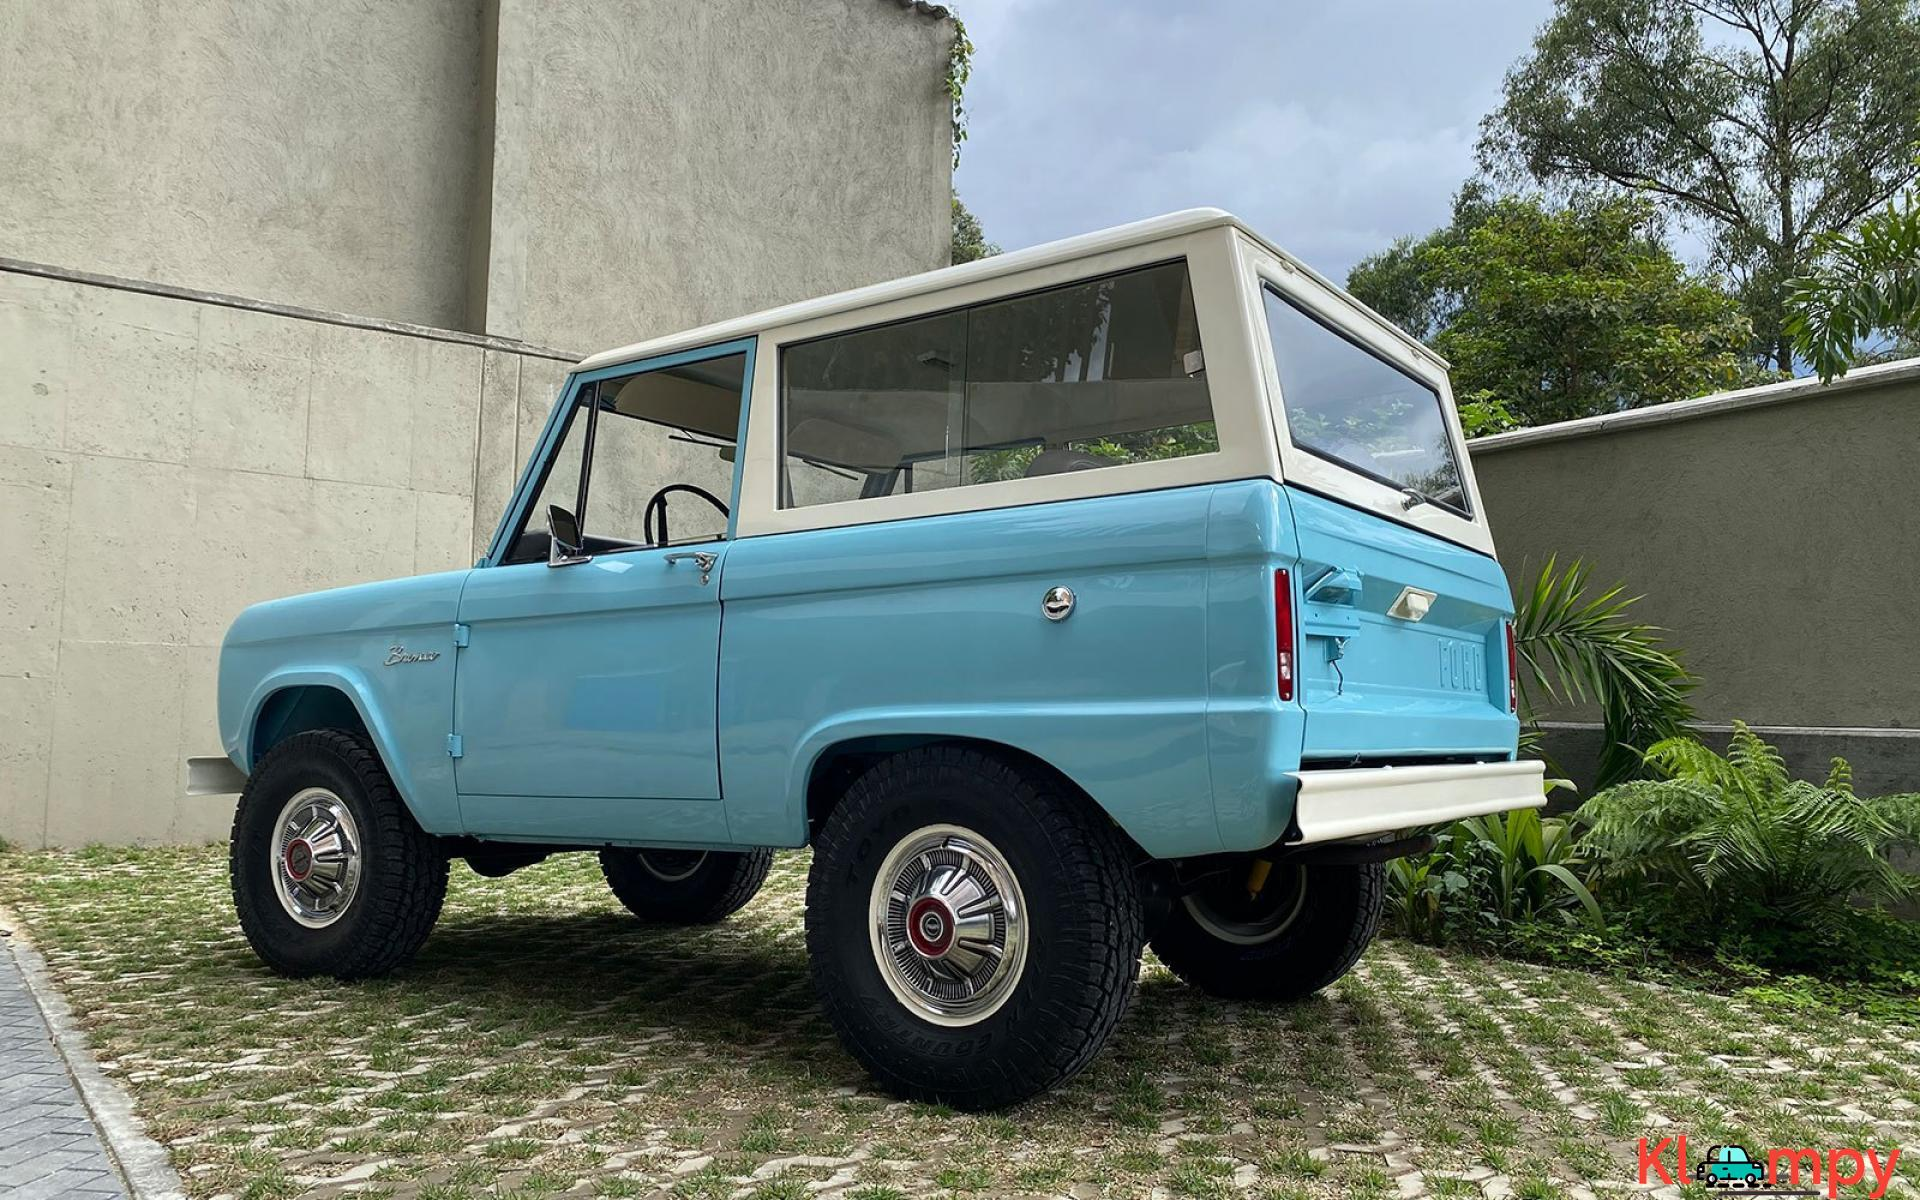 1967 Ford Bronco 170 Inline-Six - 8/21